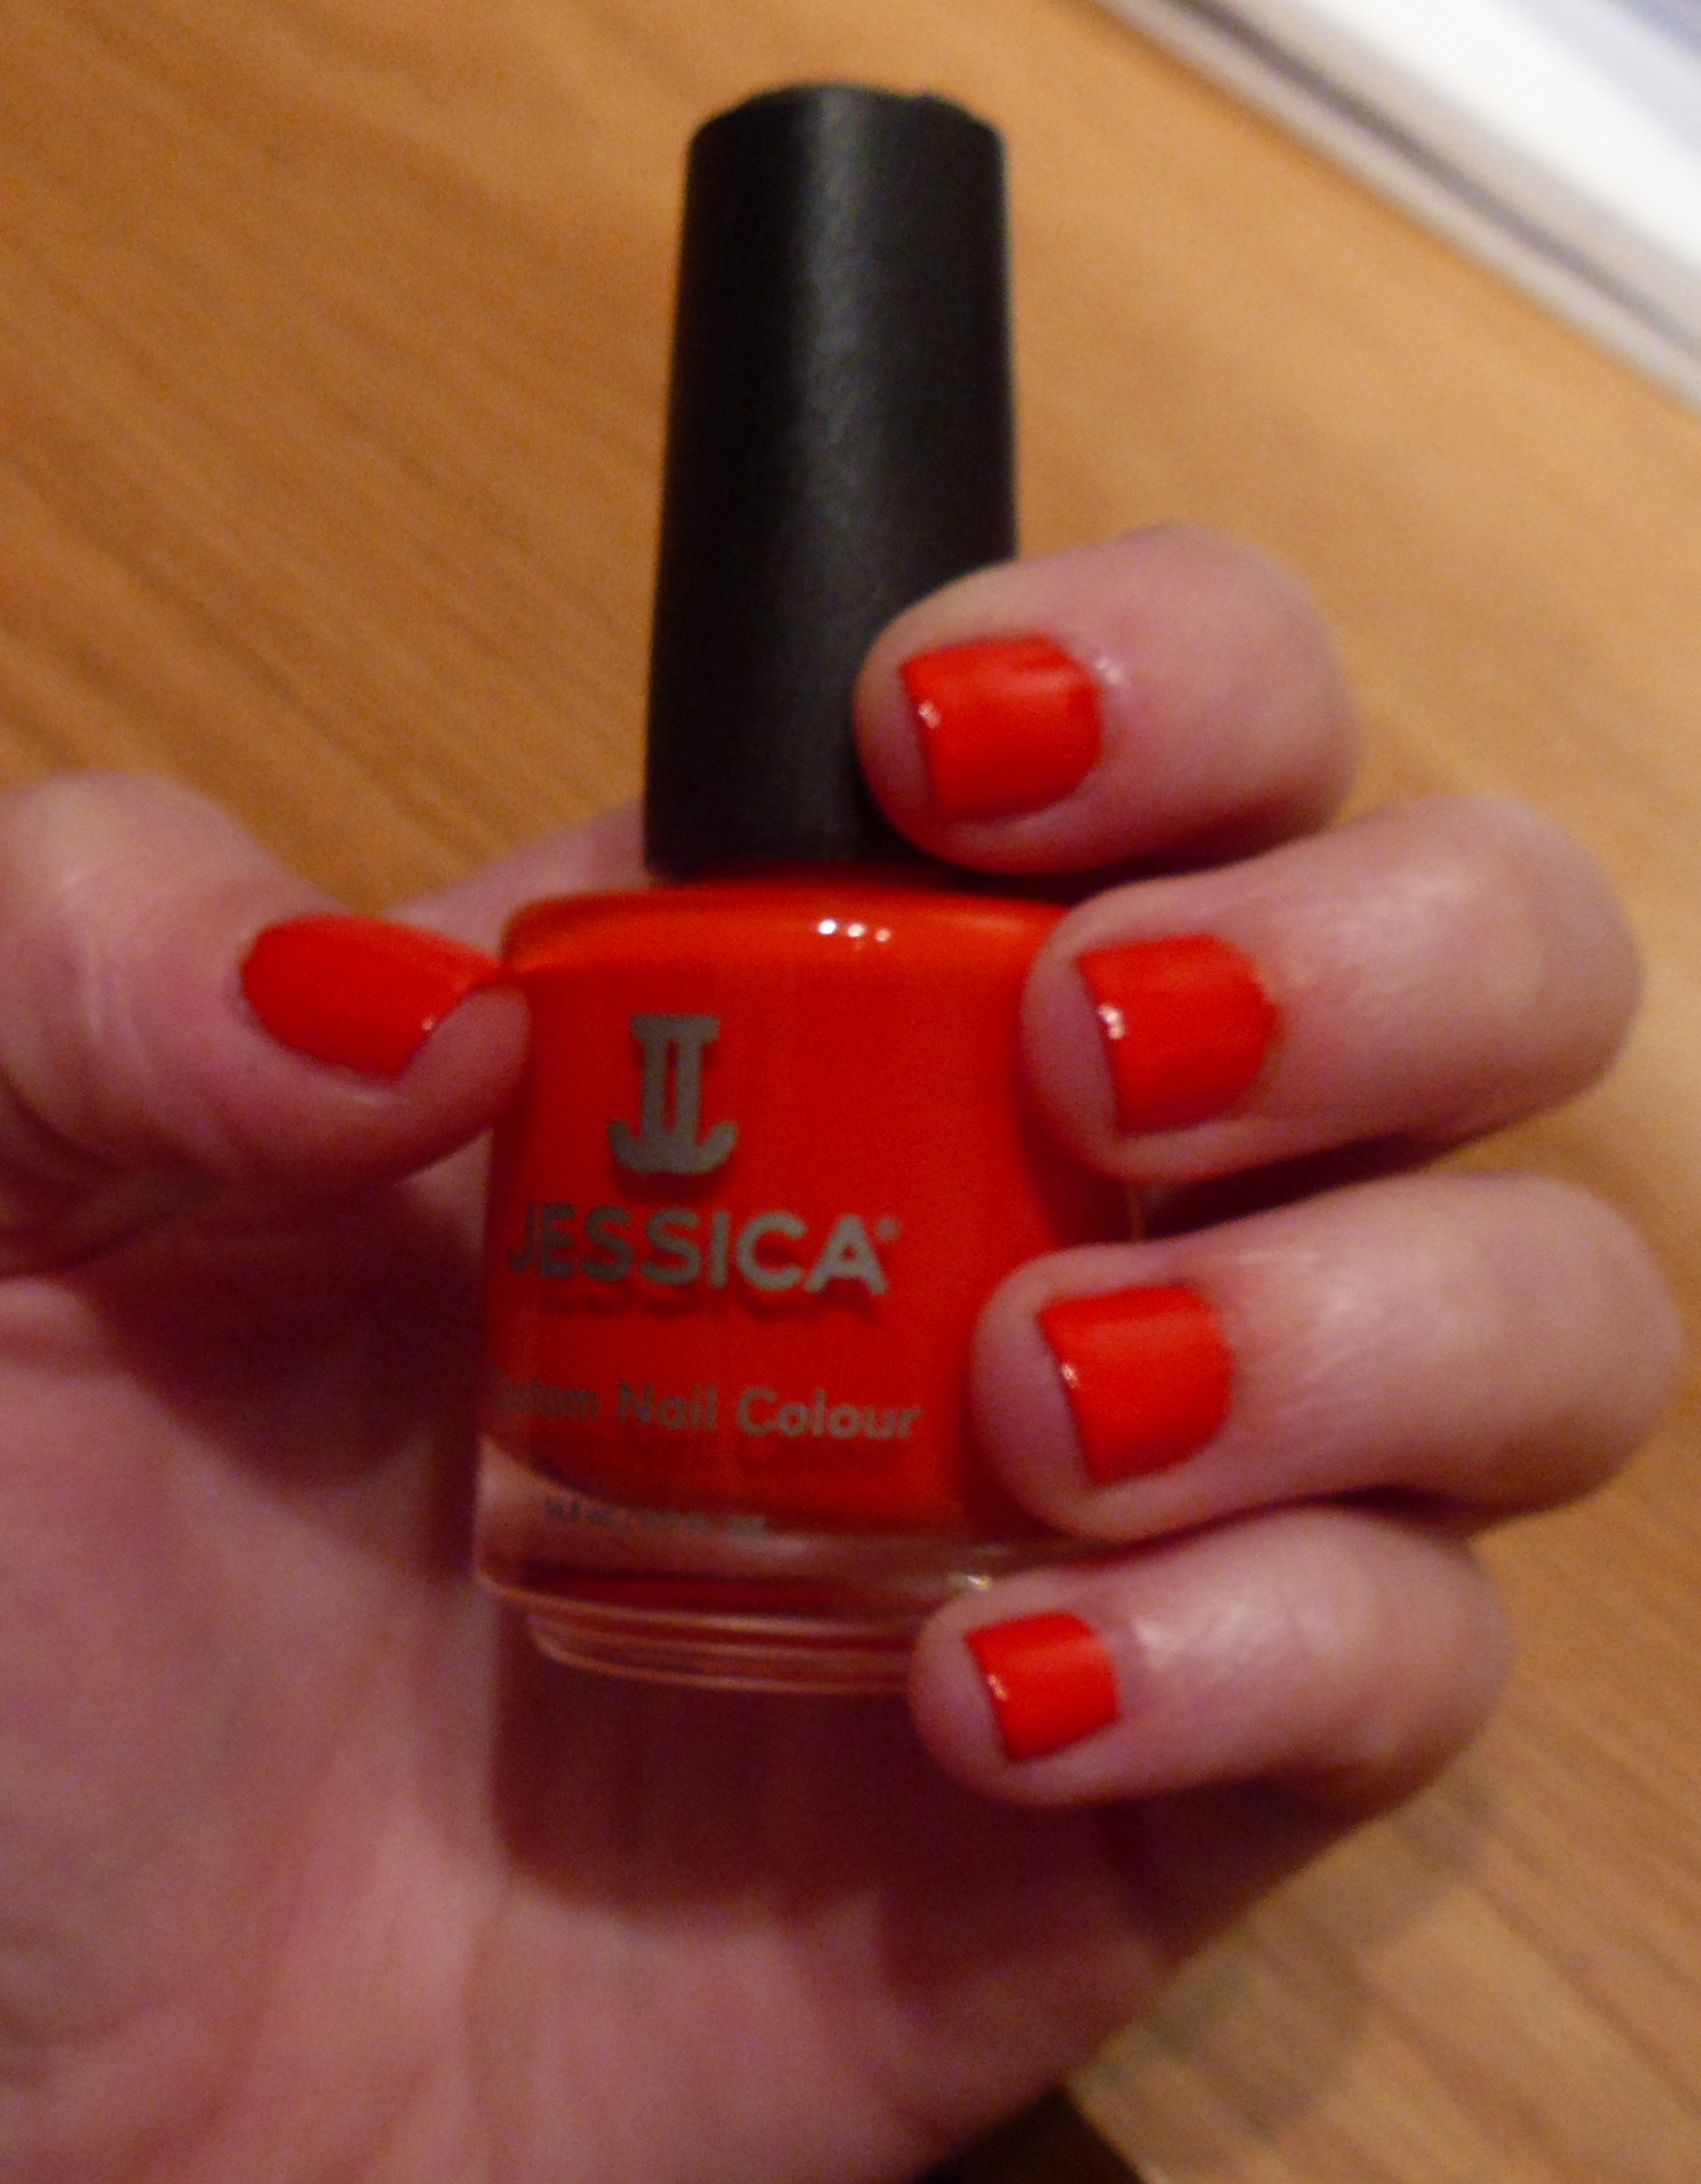 JESSICA nail polish: Orange You Glad to See Me – You can have it all.